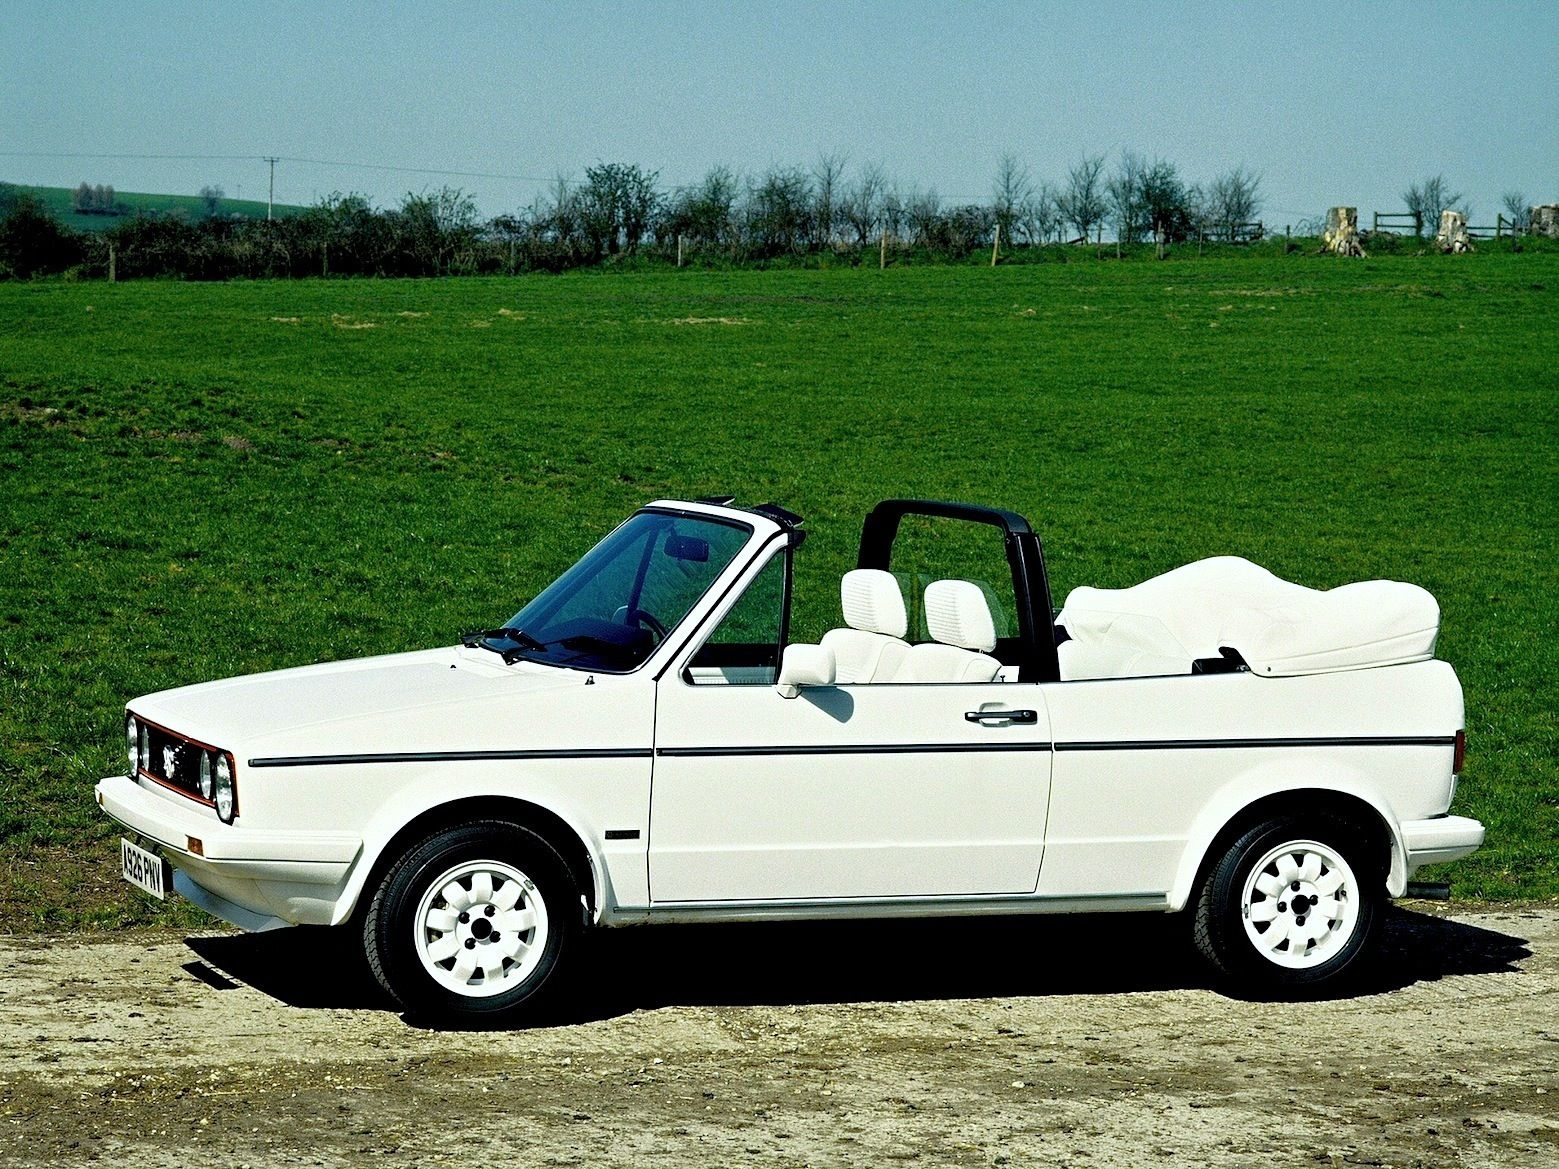 golf mk1 cabriolet white on white edition the white roof. Black Bedroom Furniture Sets. Home Design Ideas